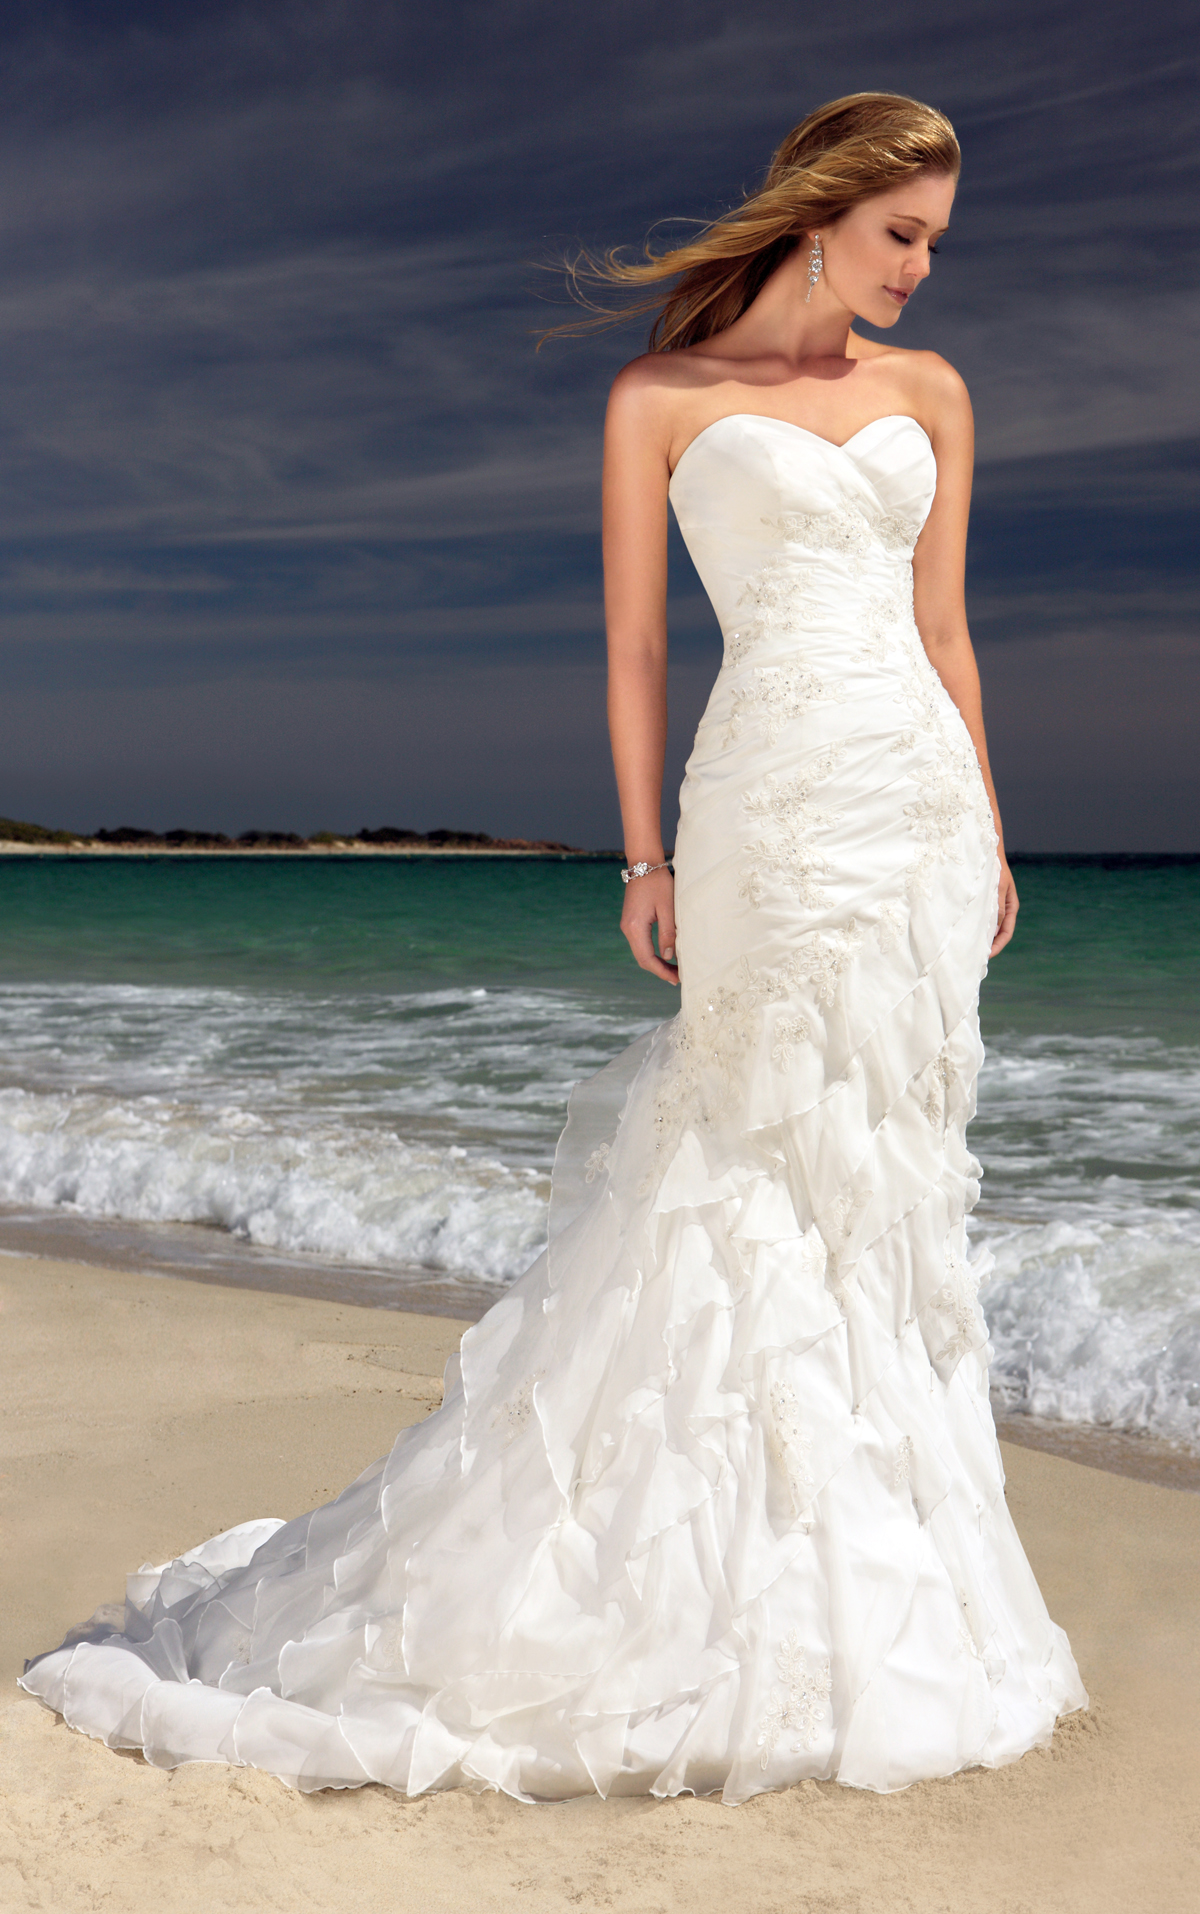 Wedding Dresses 2013 Mermaid Style